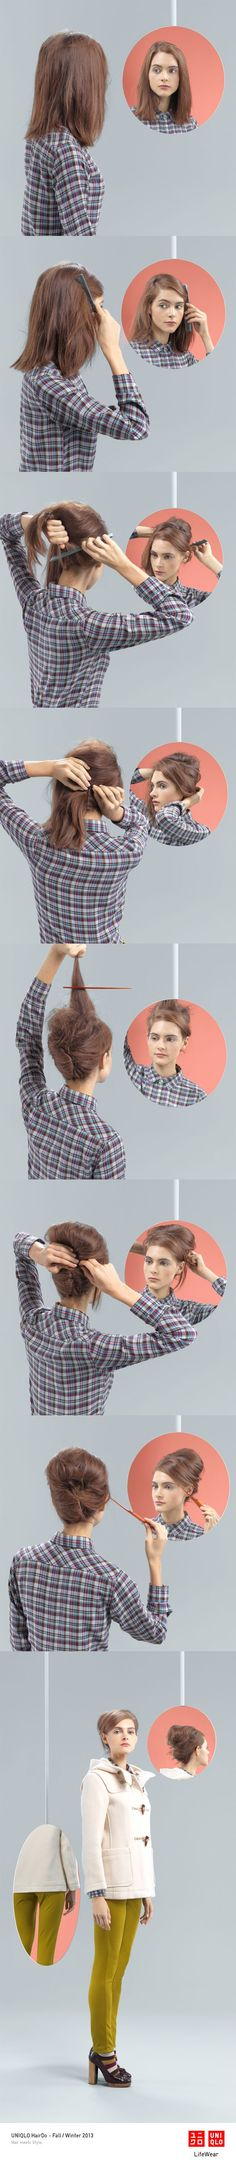 The Side Beehive Updo Hair Hairstyle Diy Uniqlo Hairdo 5 Minute Hairstyles, Up Hairstyles, Pretty Hairstyles, Classic Hairstyles, Coiffure Hair, Great Hair, About Hair, Vintage Hairstyles, Hair Today